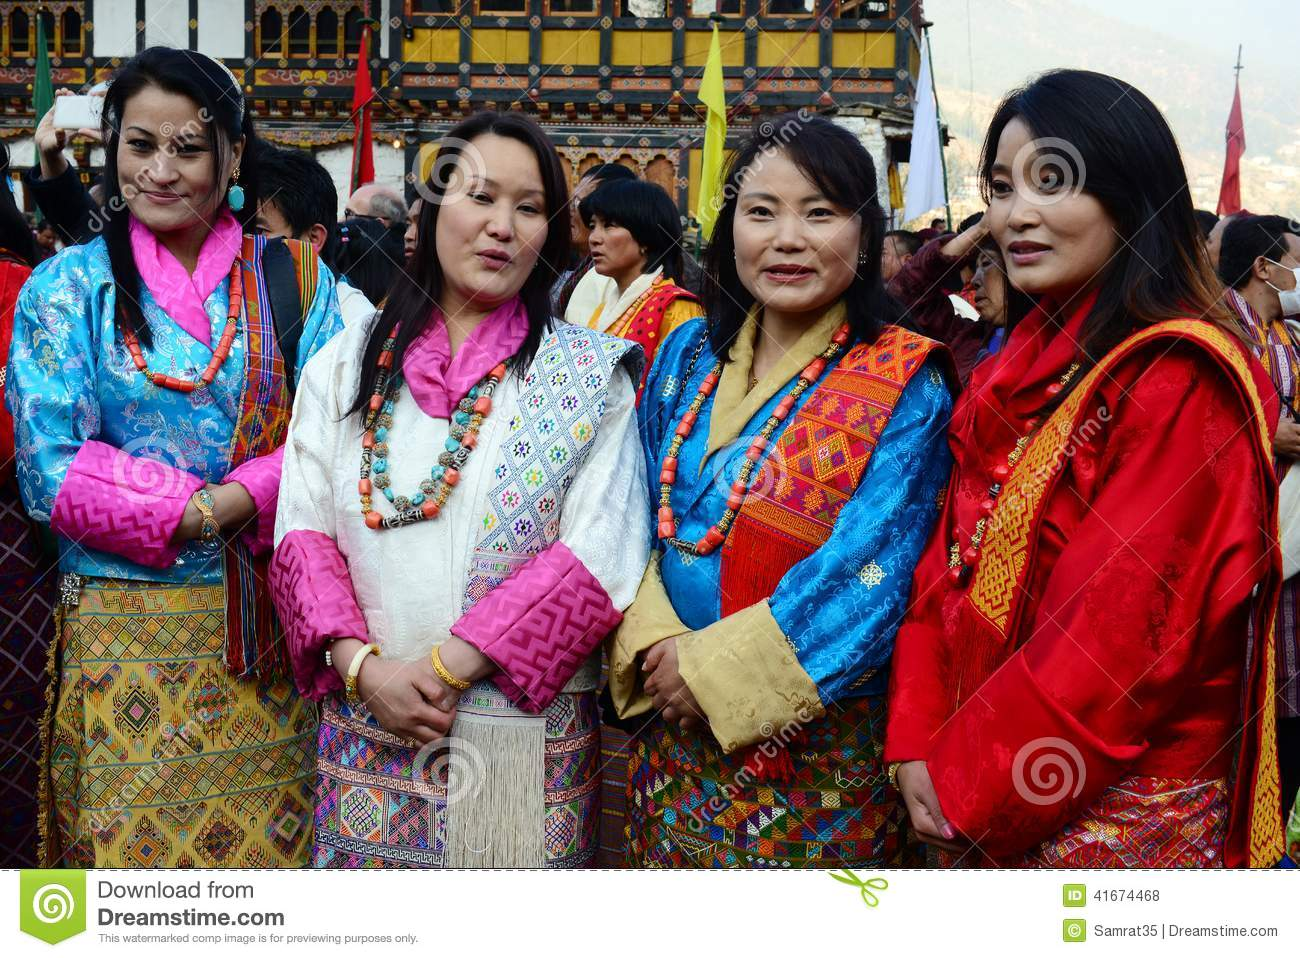 Bhutanese marriage culture in india